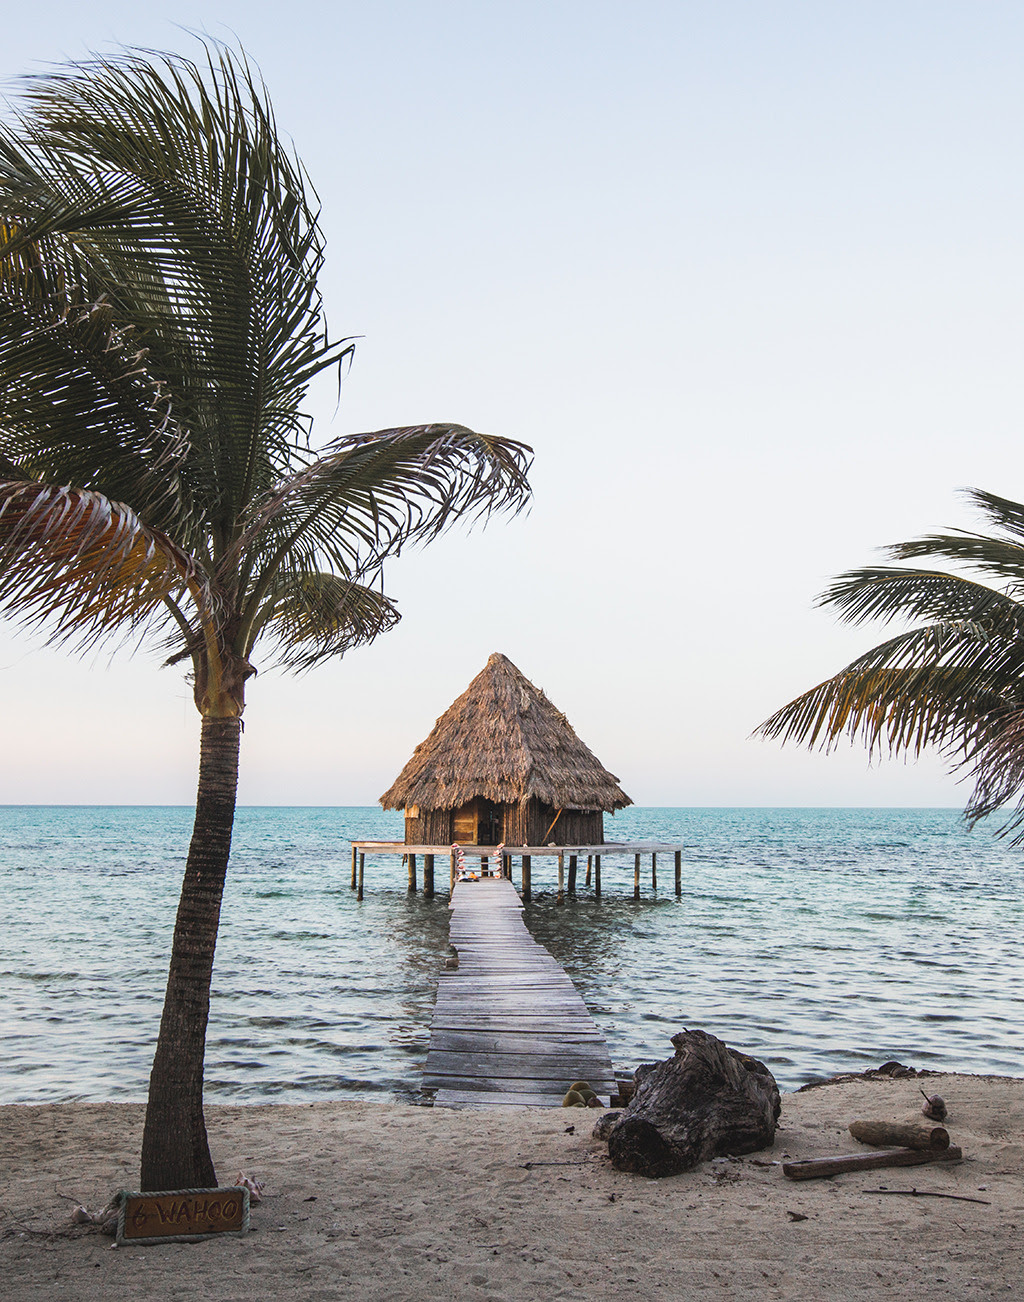 Floating cabins on a backpackers island 2km off the coast of Belize There was no electricity in the cabin, just candles and the seaside. You bring your own food to stay or buy from the local fisherman that go out everyday. The backpacker island is...